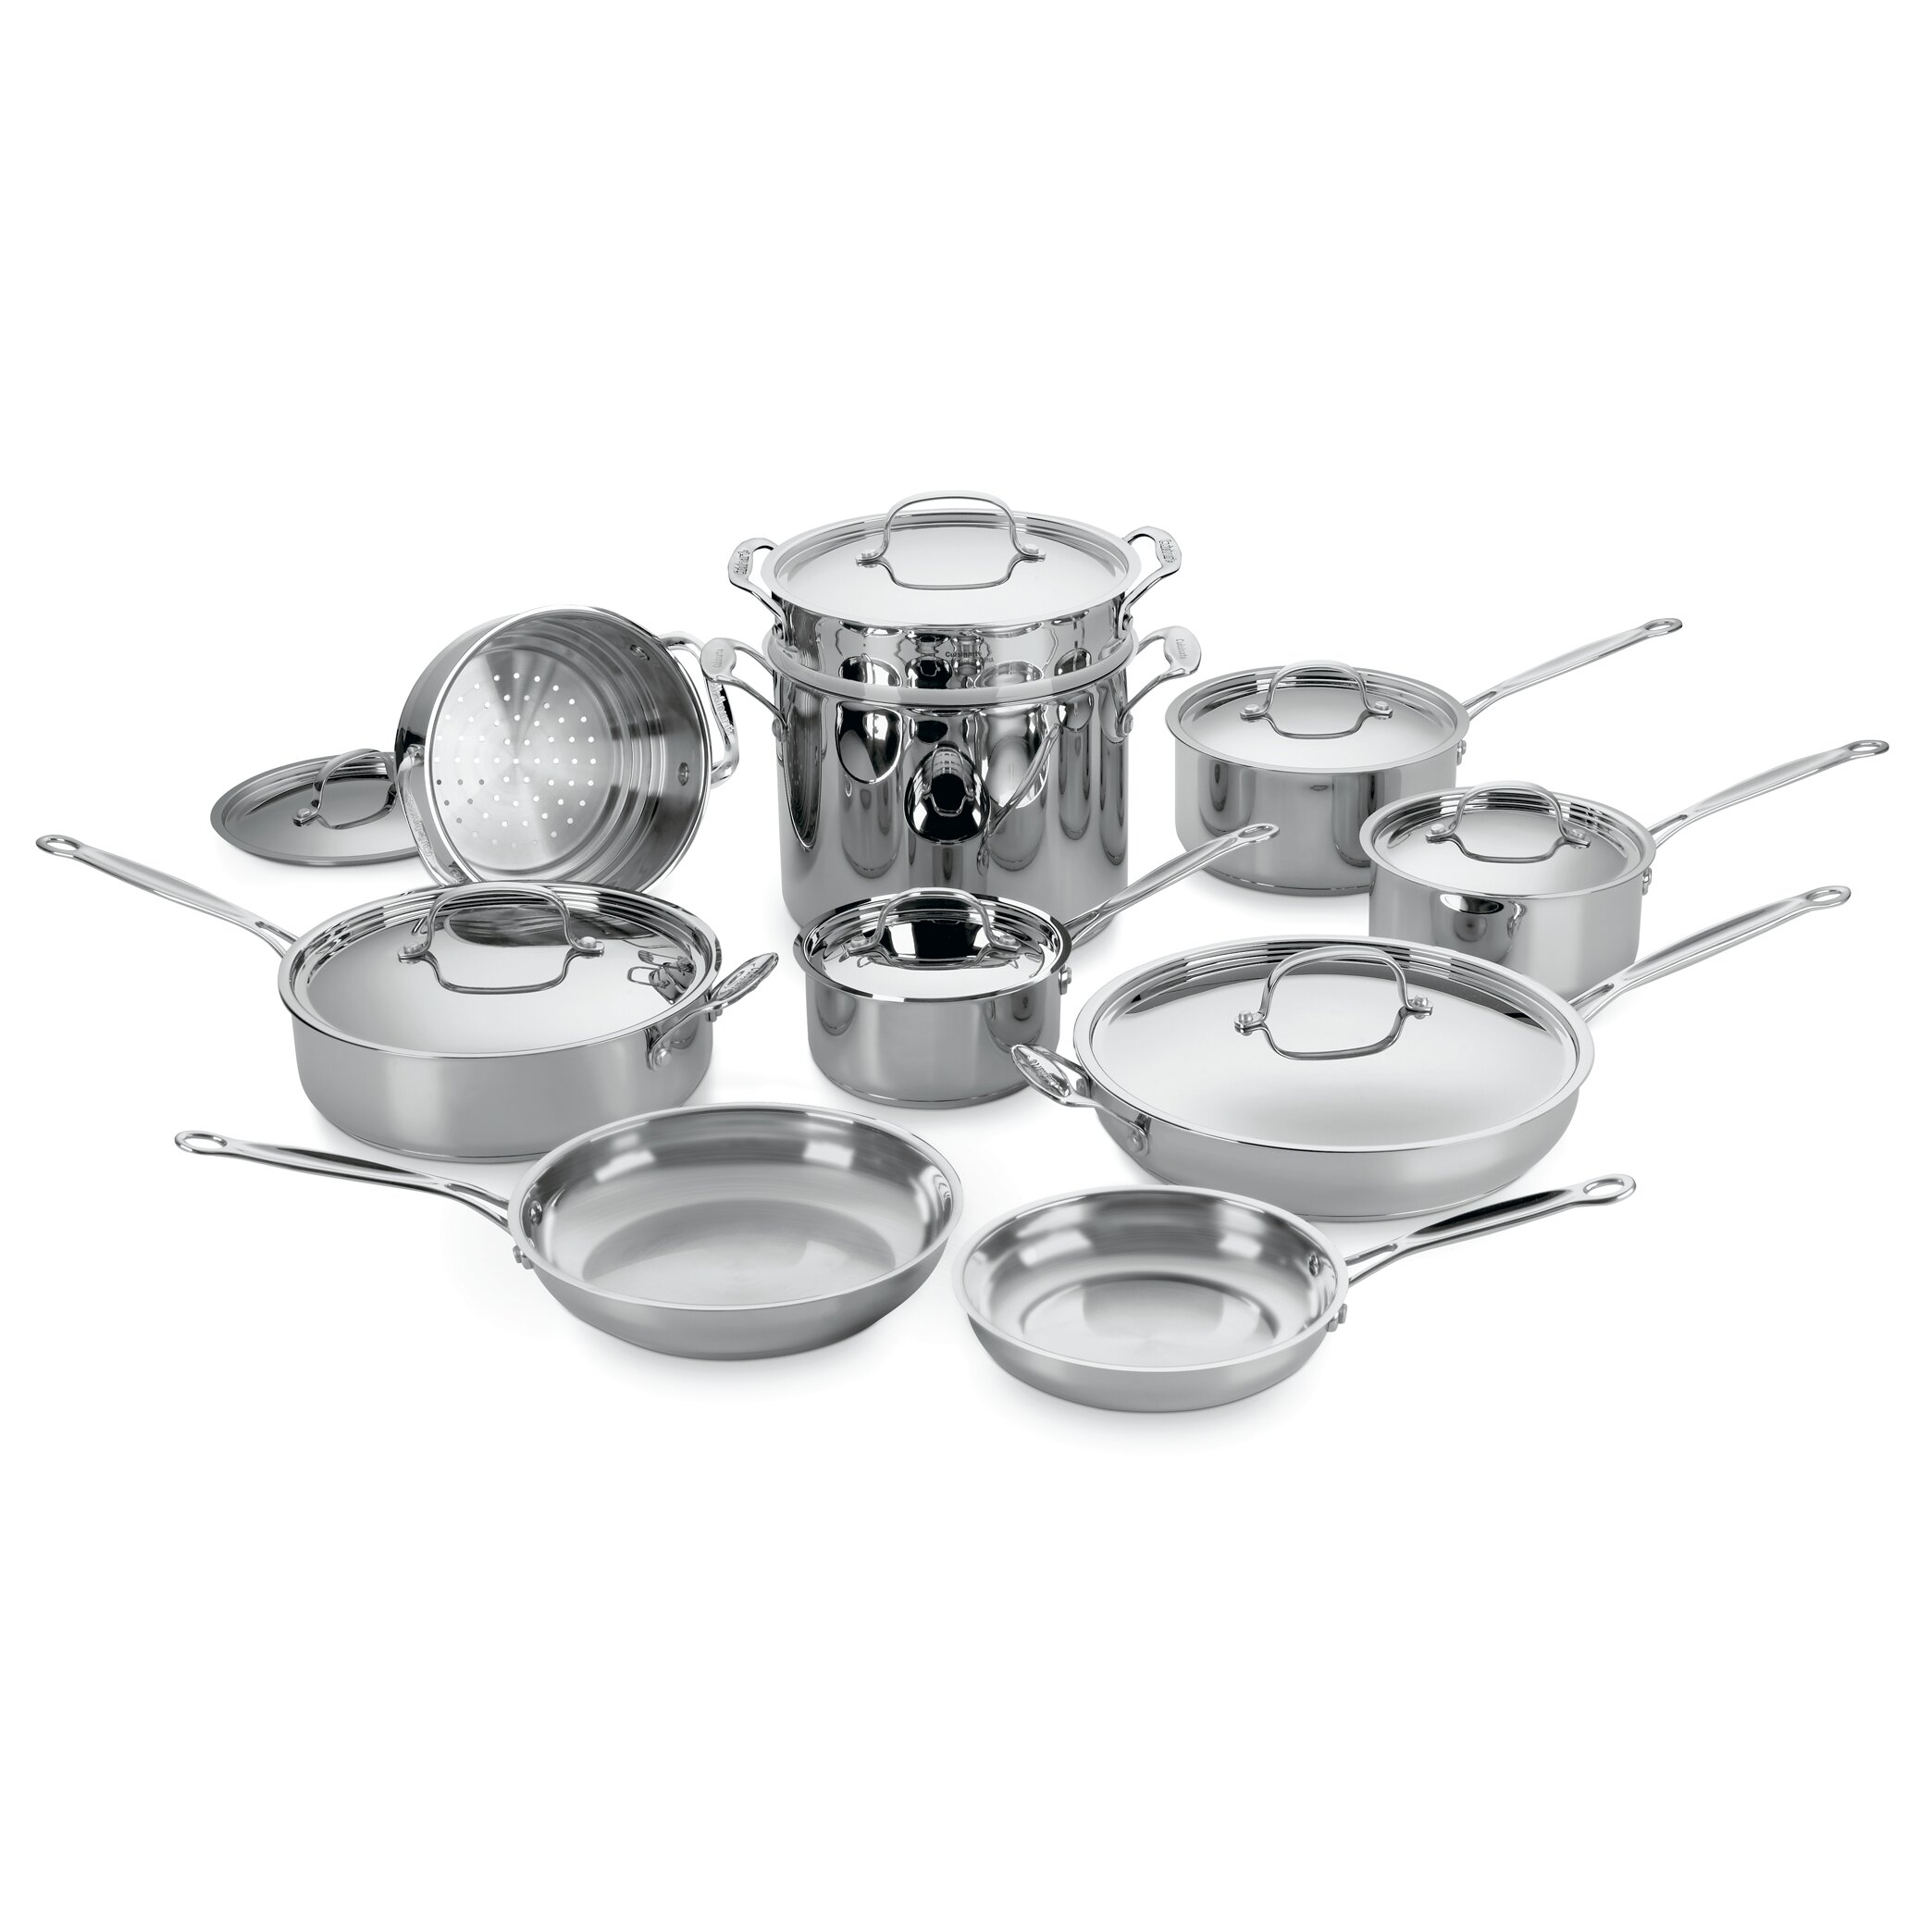 Cuisinart chef 39 s classic stainless steel 17 piece cookware for Art and cuisine cookware review